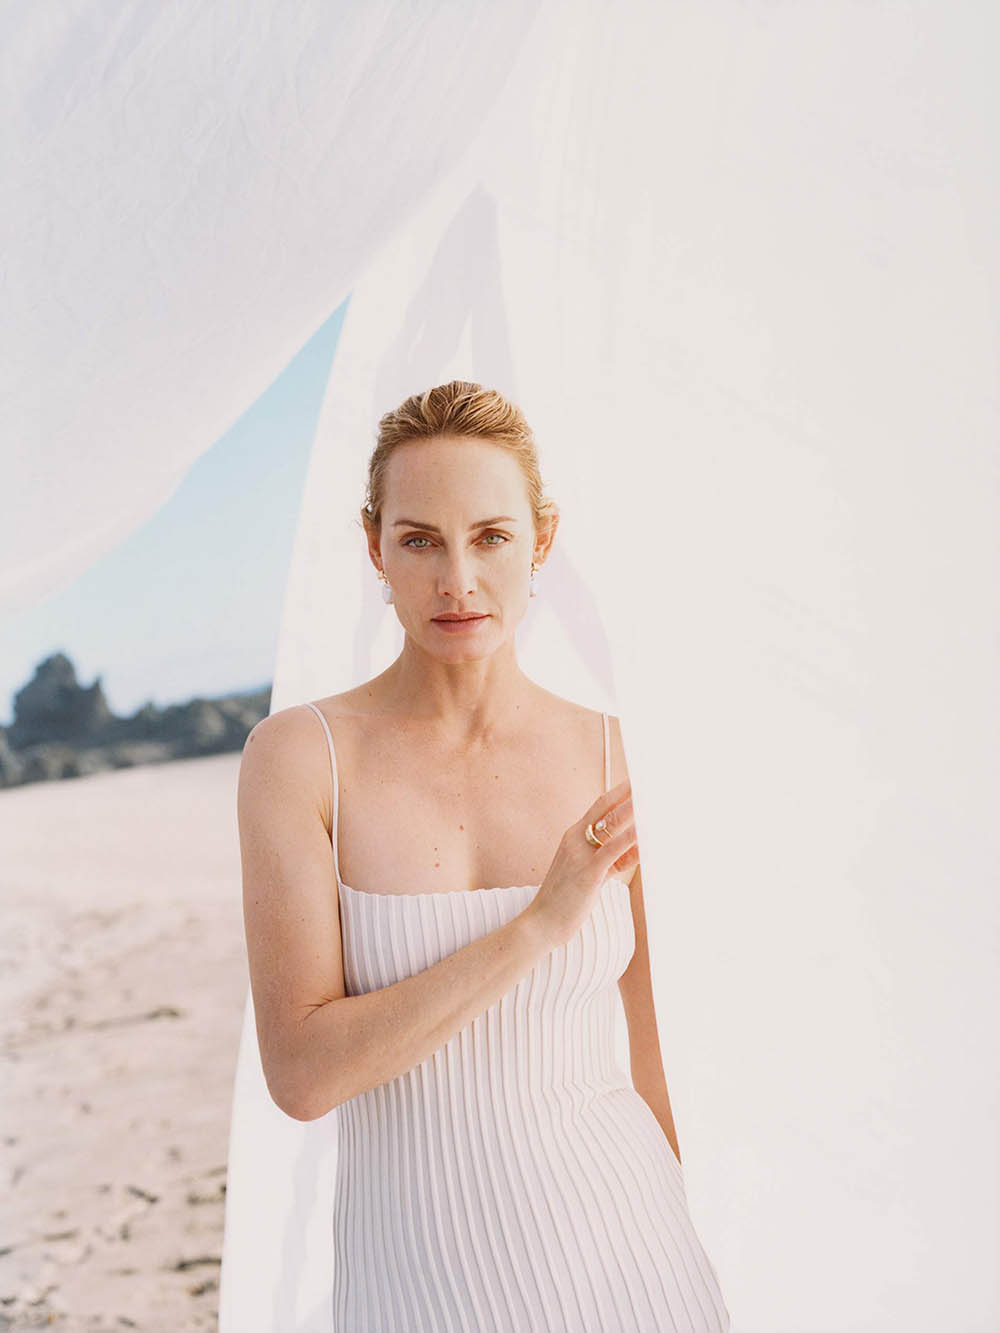 Amber Valletta covers Porter Magazine January 13th, 2020 by David Luraschi